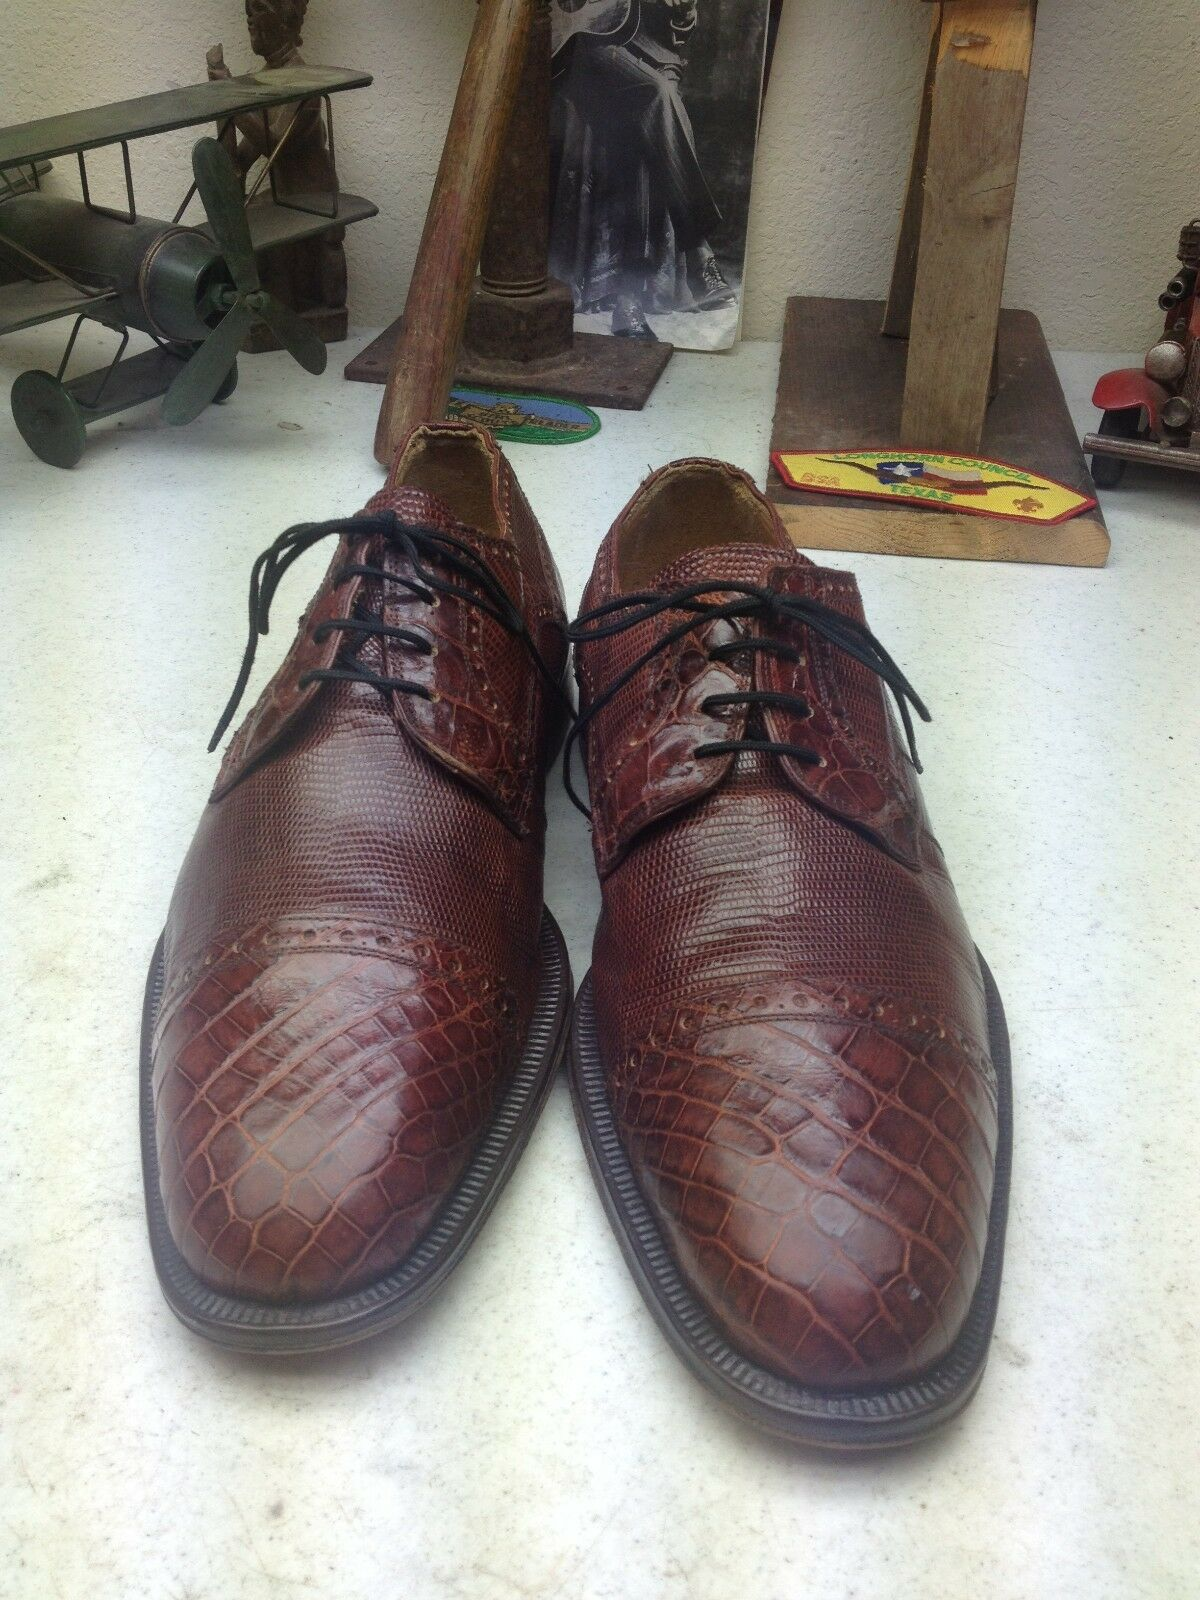 DAVID EDEN LIZARD CROCODILE BURGUNDY LEATHER LACE UP BUSINESS OXFORD SHOES 9.5 D Scarpe classiche da uomo